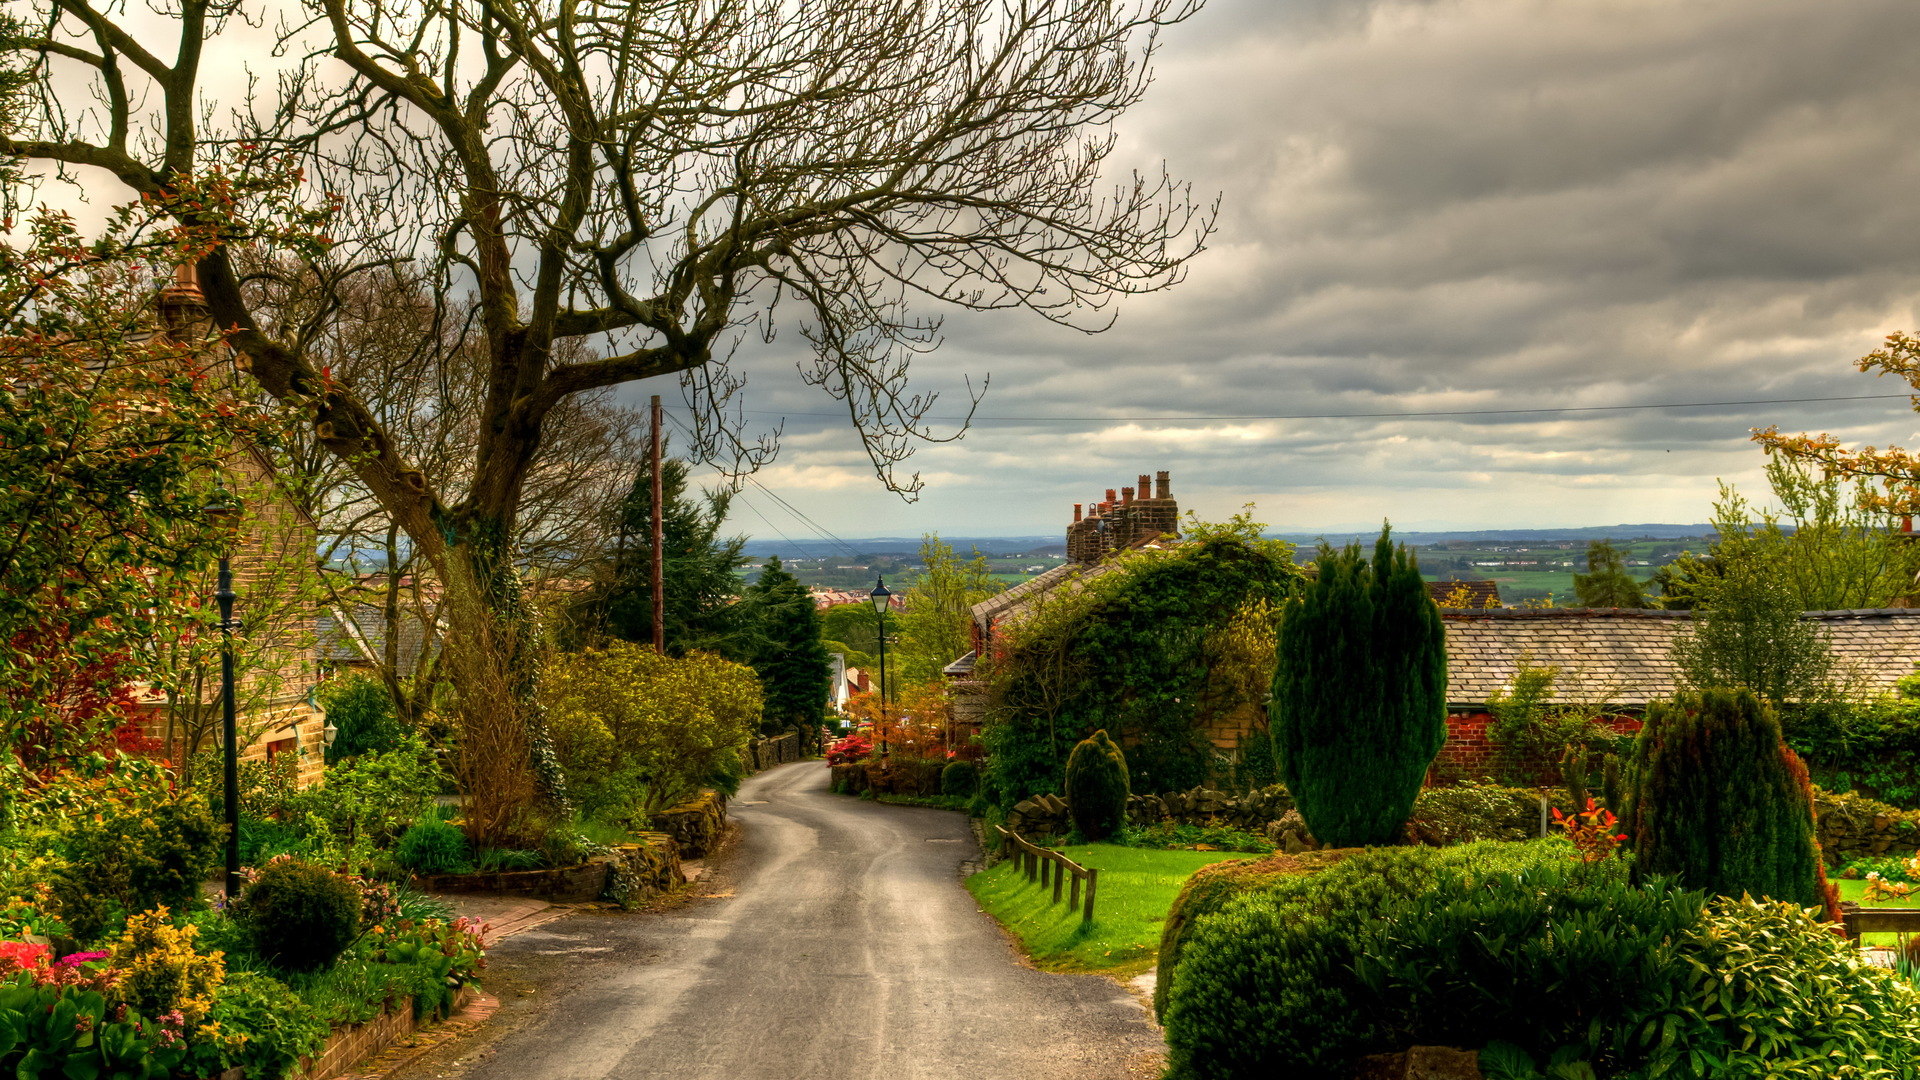 English Country Wallpaper   WallpaperSafari